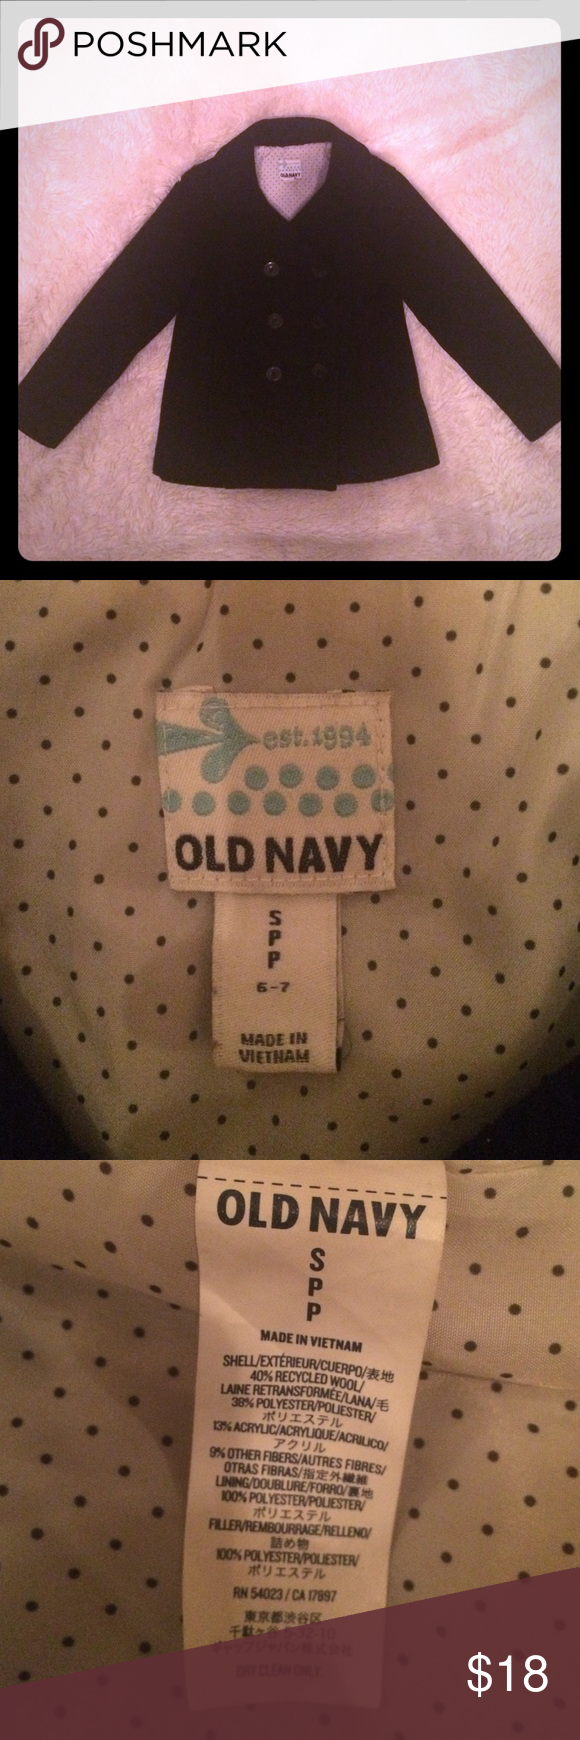 Old navy girls wool pea coat size small 6/7 You are looking at a cute warm fashionable girls wool pea coat by Old Navy. This coat is in good used condition with no defects or damages. Please let me know if you have any questions and thanks so much for looking! Old Navy Jackets & Coats Pea Coats